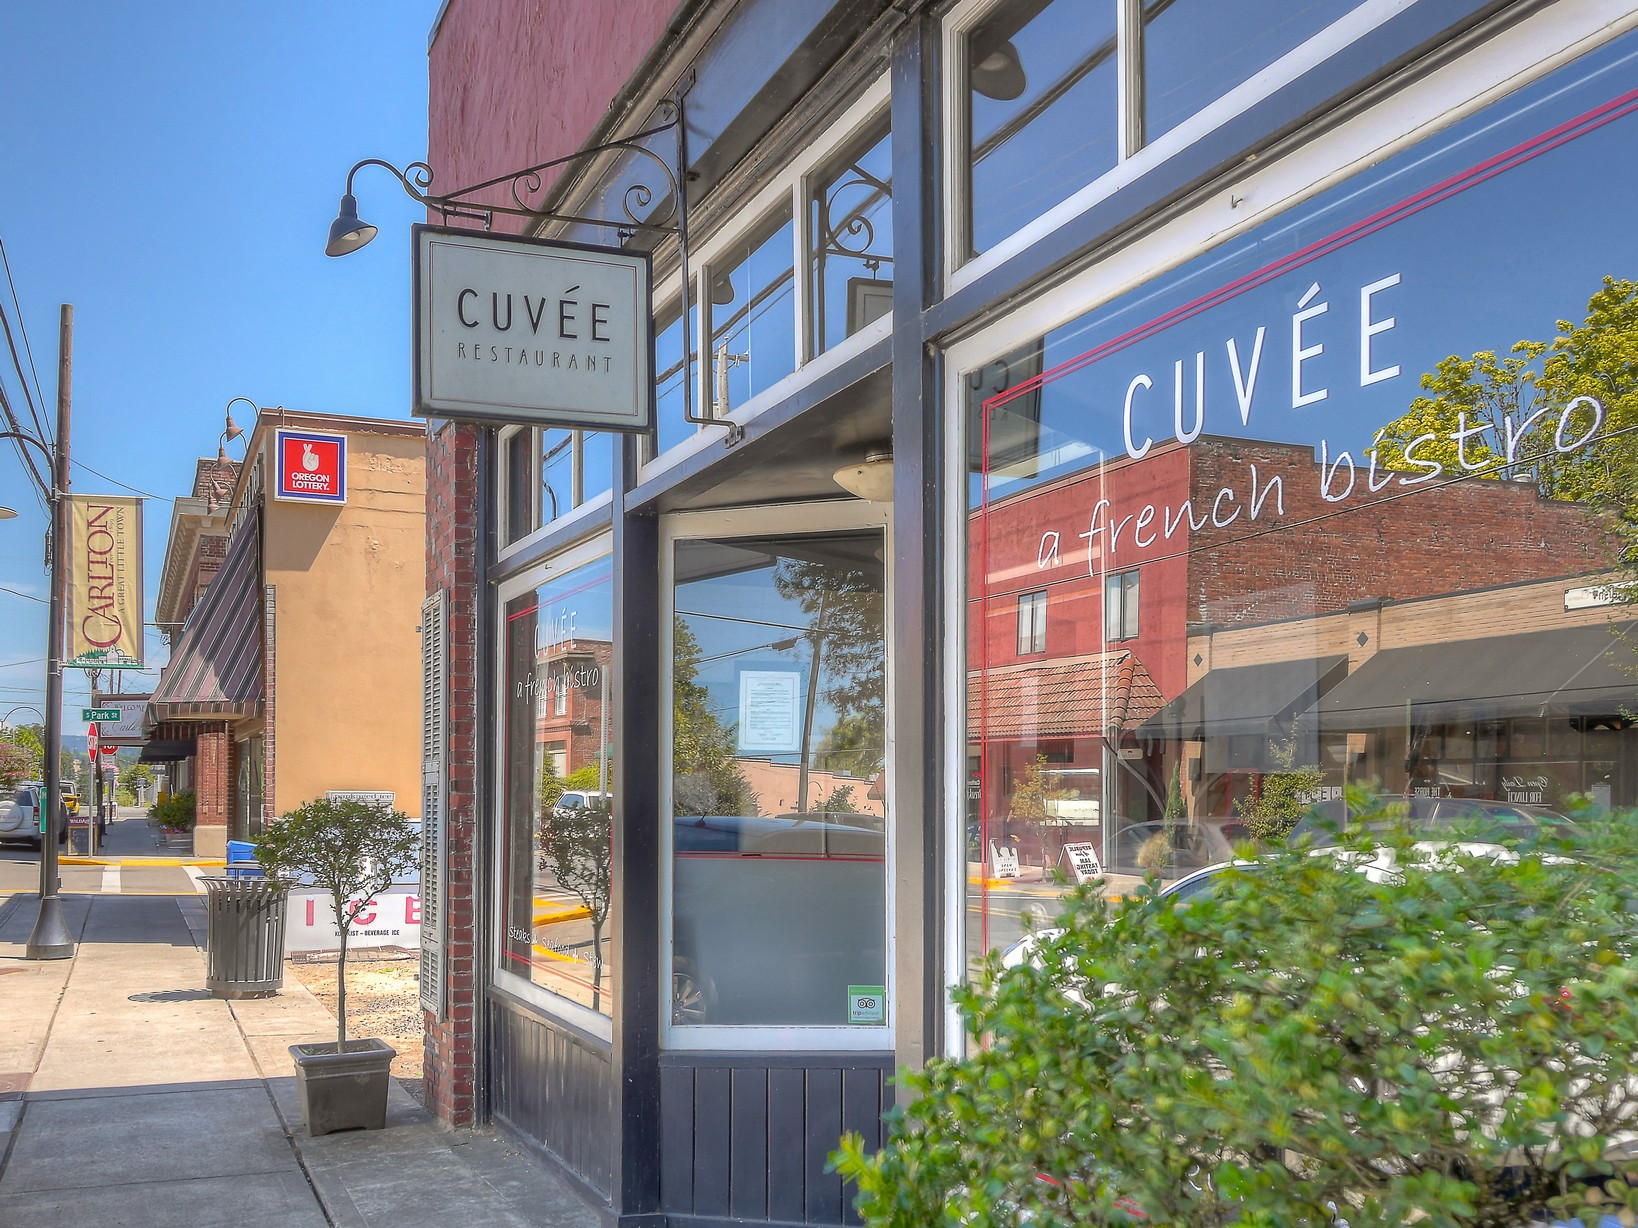 2-carlton-oregon-cuvee-restaurant-french-bistro-the-kelly-group-real-estate